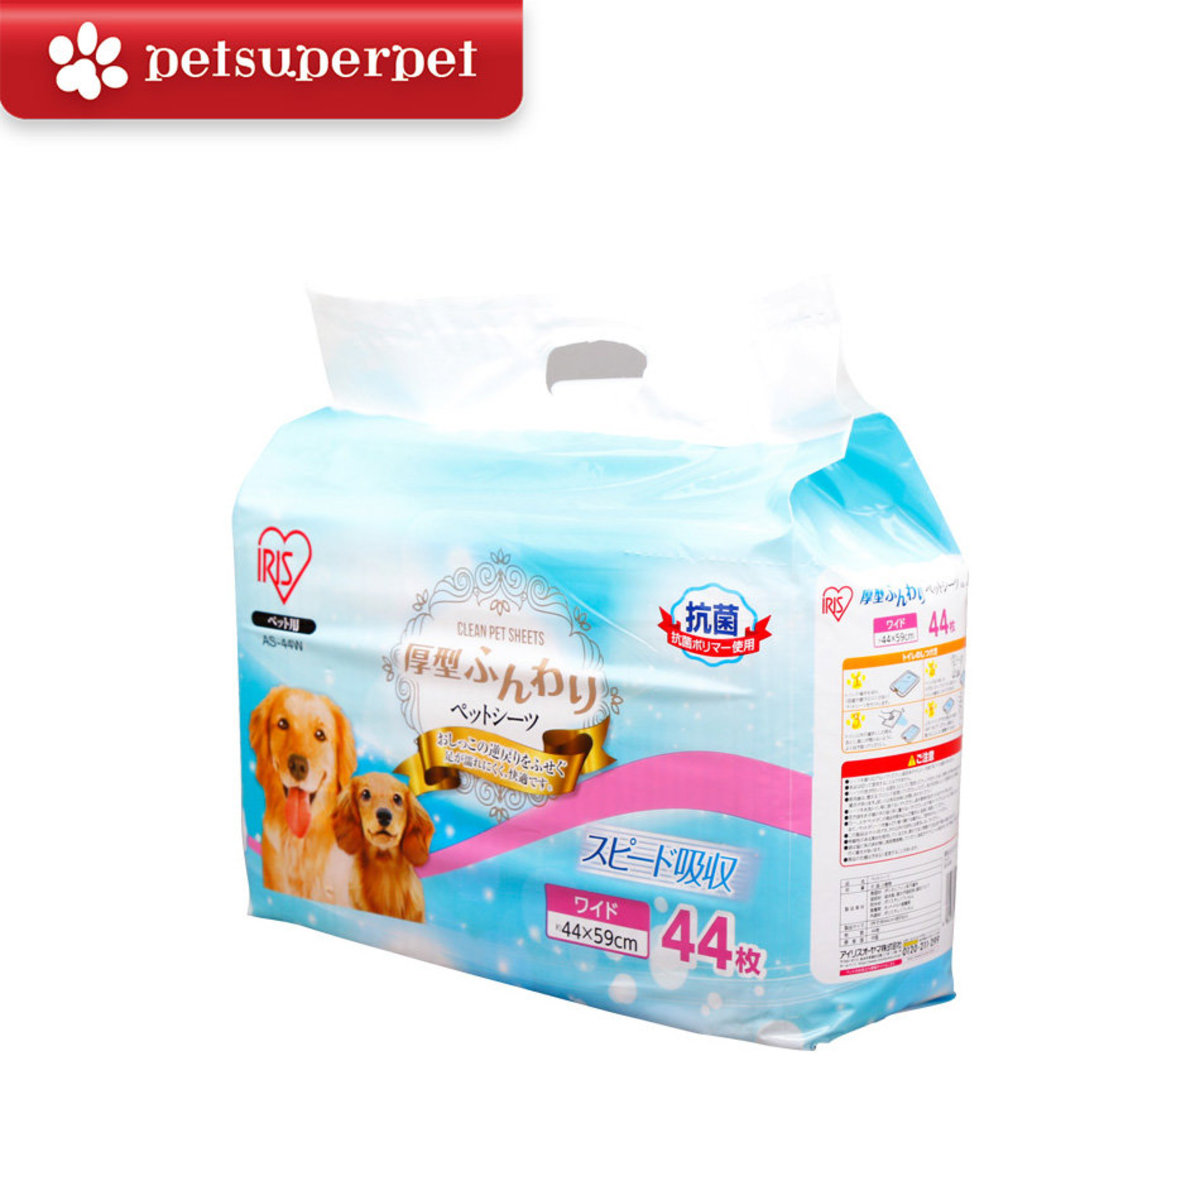 Japan AS Series Super Thick Antibacterial Pet Dog Pad (Parallel Import Goods)  (44x59cm, 44 pieces)